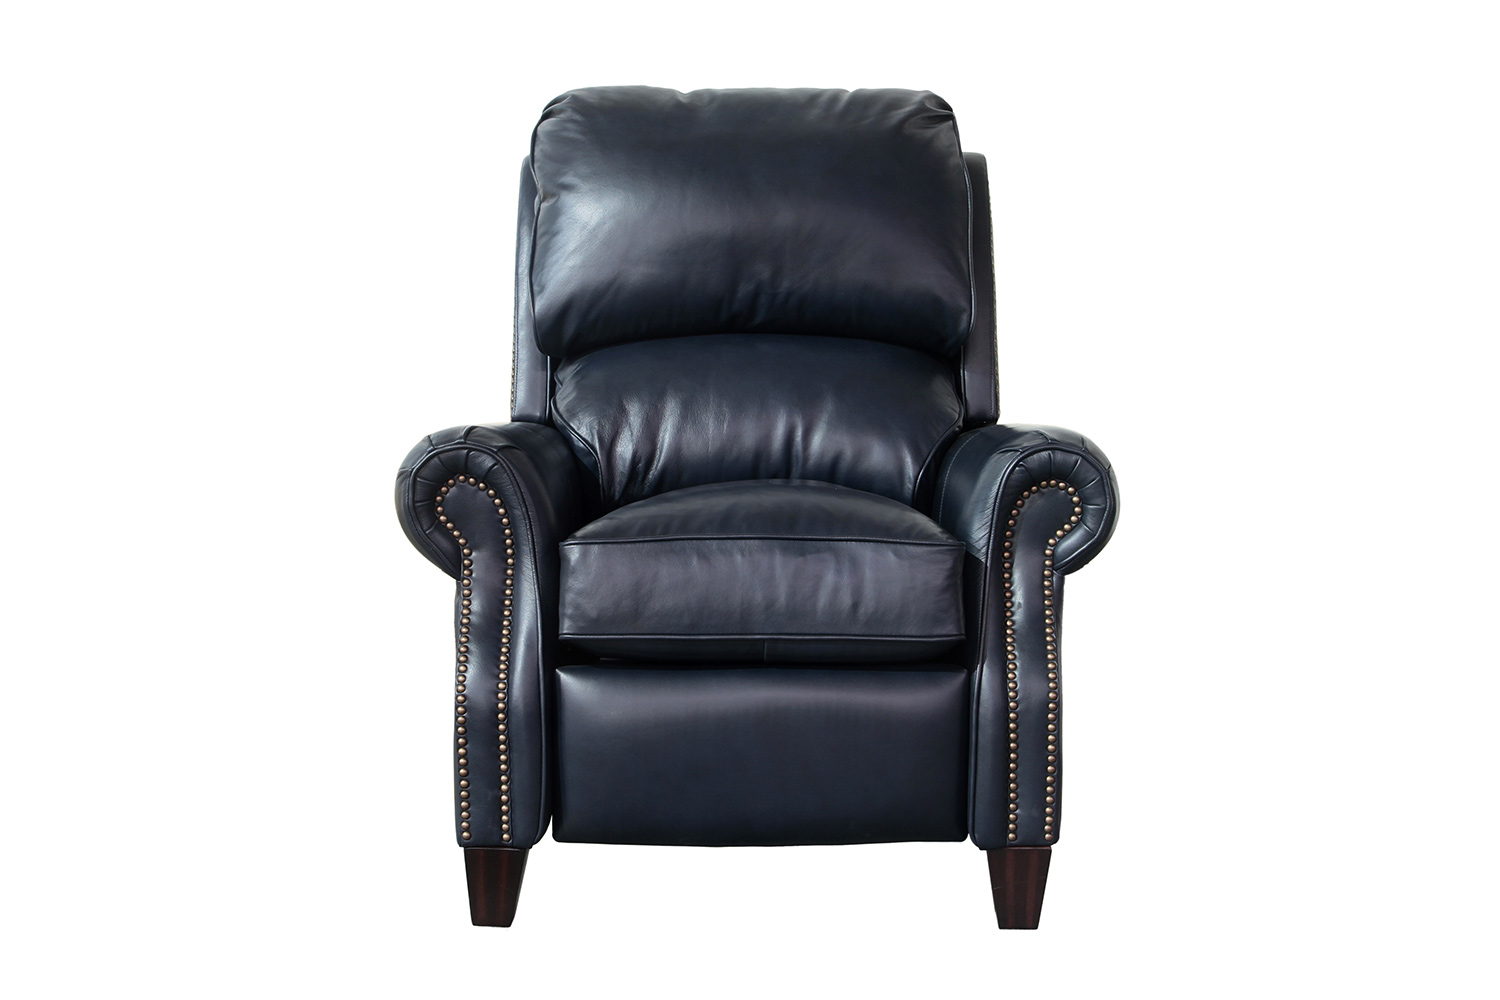 all leather recliner chairs cheap chair covers and sashes barcalounger churchill shoreham blue